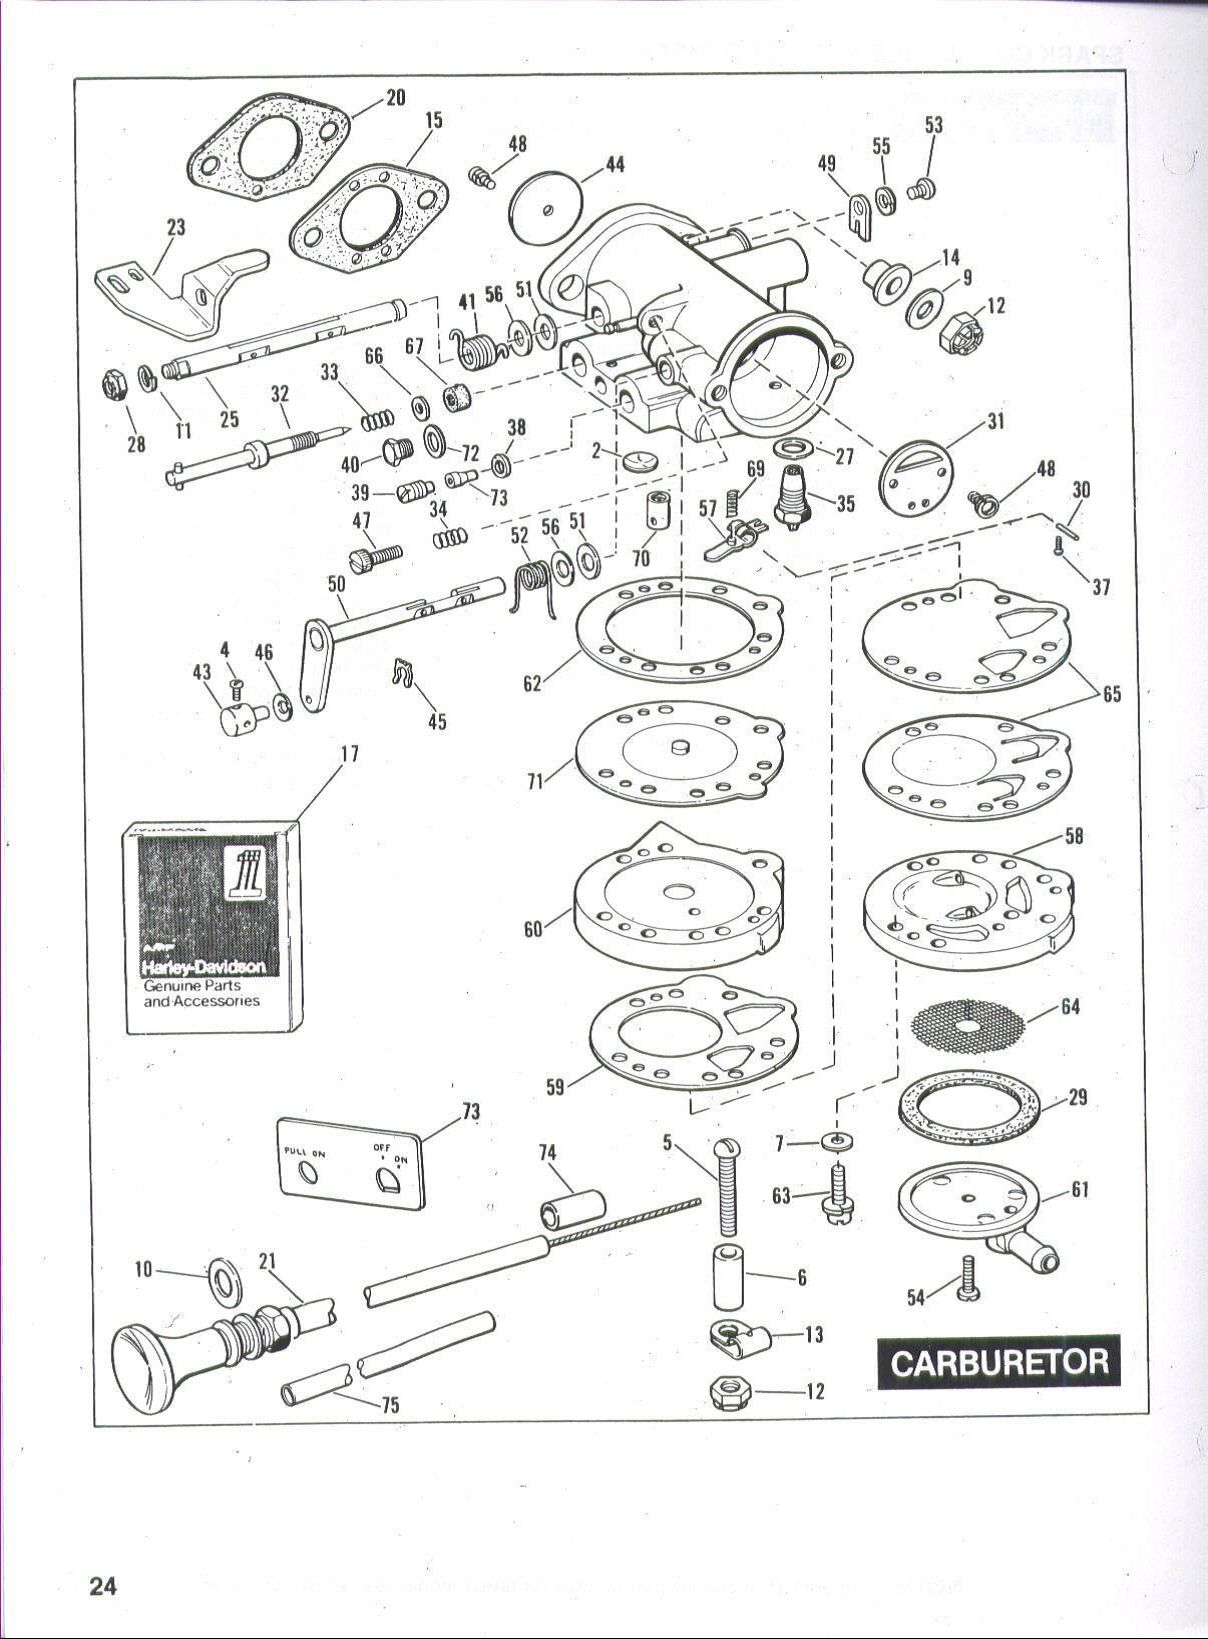 Wiring Diagram 1981 Harley Sportster - Page 5 - Wiring Diagram And on harley magneto diagram, harley relay diagram, harley headlight diagram, harley fuel pump diagram, harley fuel lines diagram, harley rear axle diagram, harley evo diagram, harley panhead wiring, harley fuse diagram, harley switch diagram, harley body diagram, harley dash wiring, harley shift linkage diagram, harley frame diagram, harley wiring tools, harley softail wiring harness, harley generator diagram, harley stator diagram, harley throttle cable diagram, harley wiring color codes,